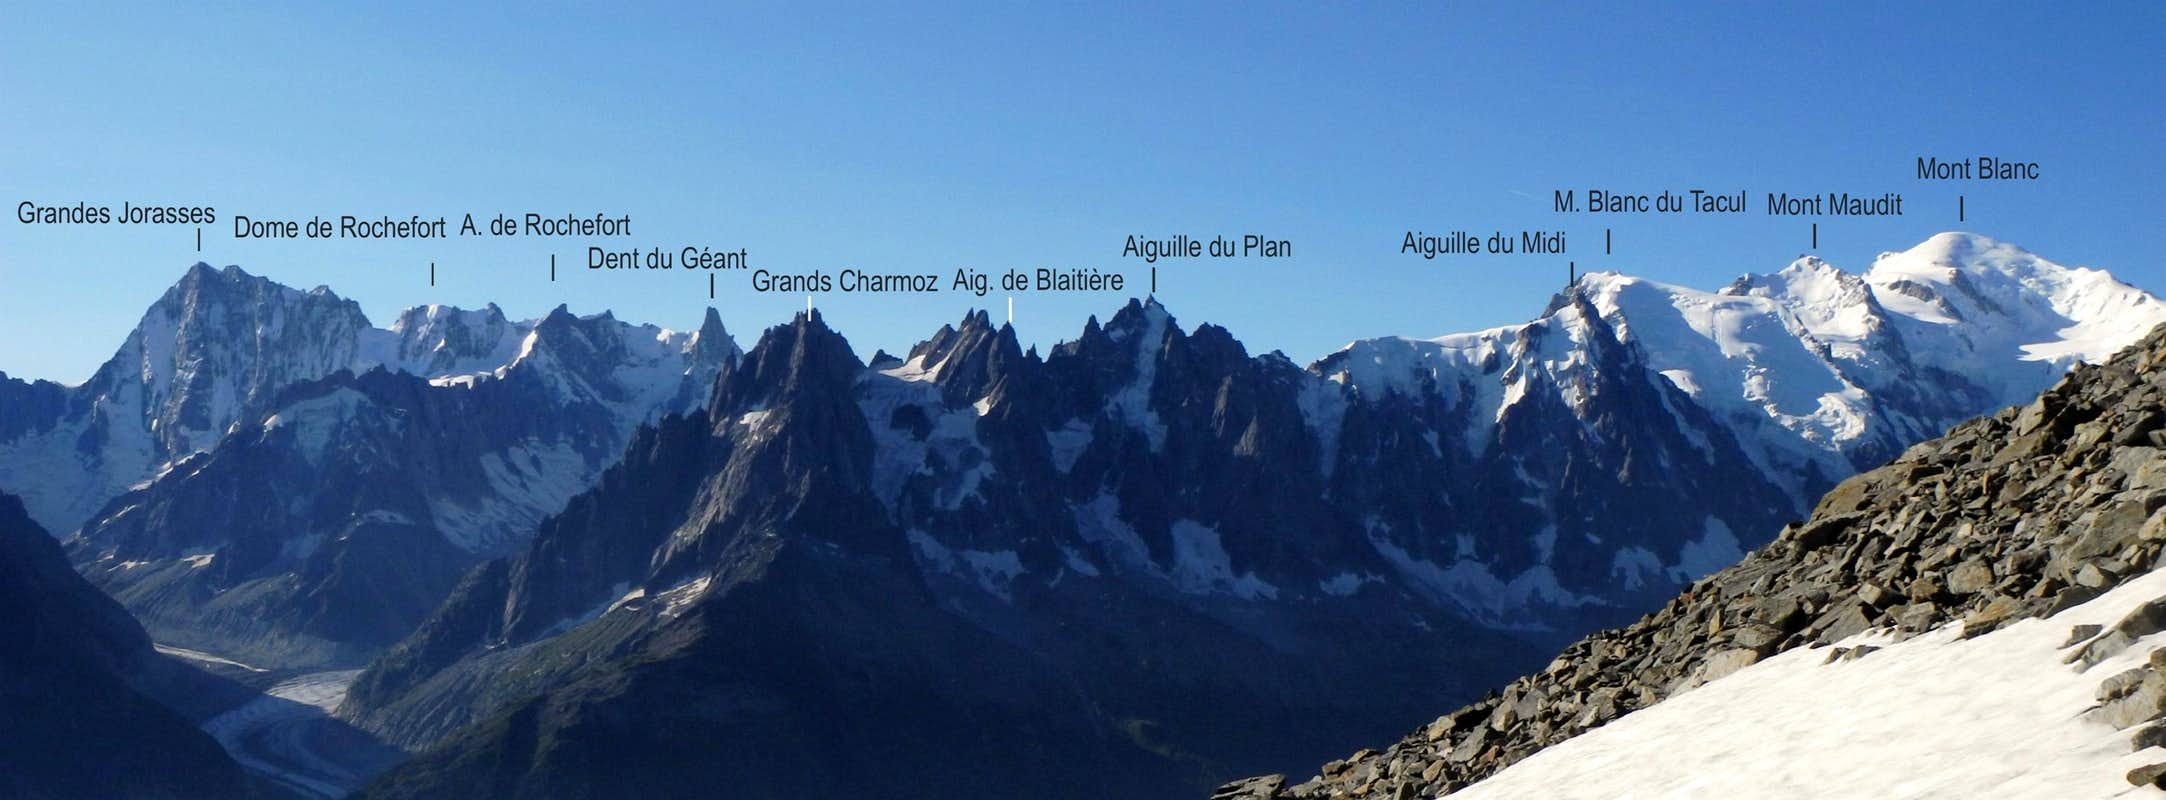 Mont Blanc Group from Aiguilles Rouges labelled